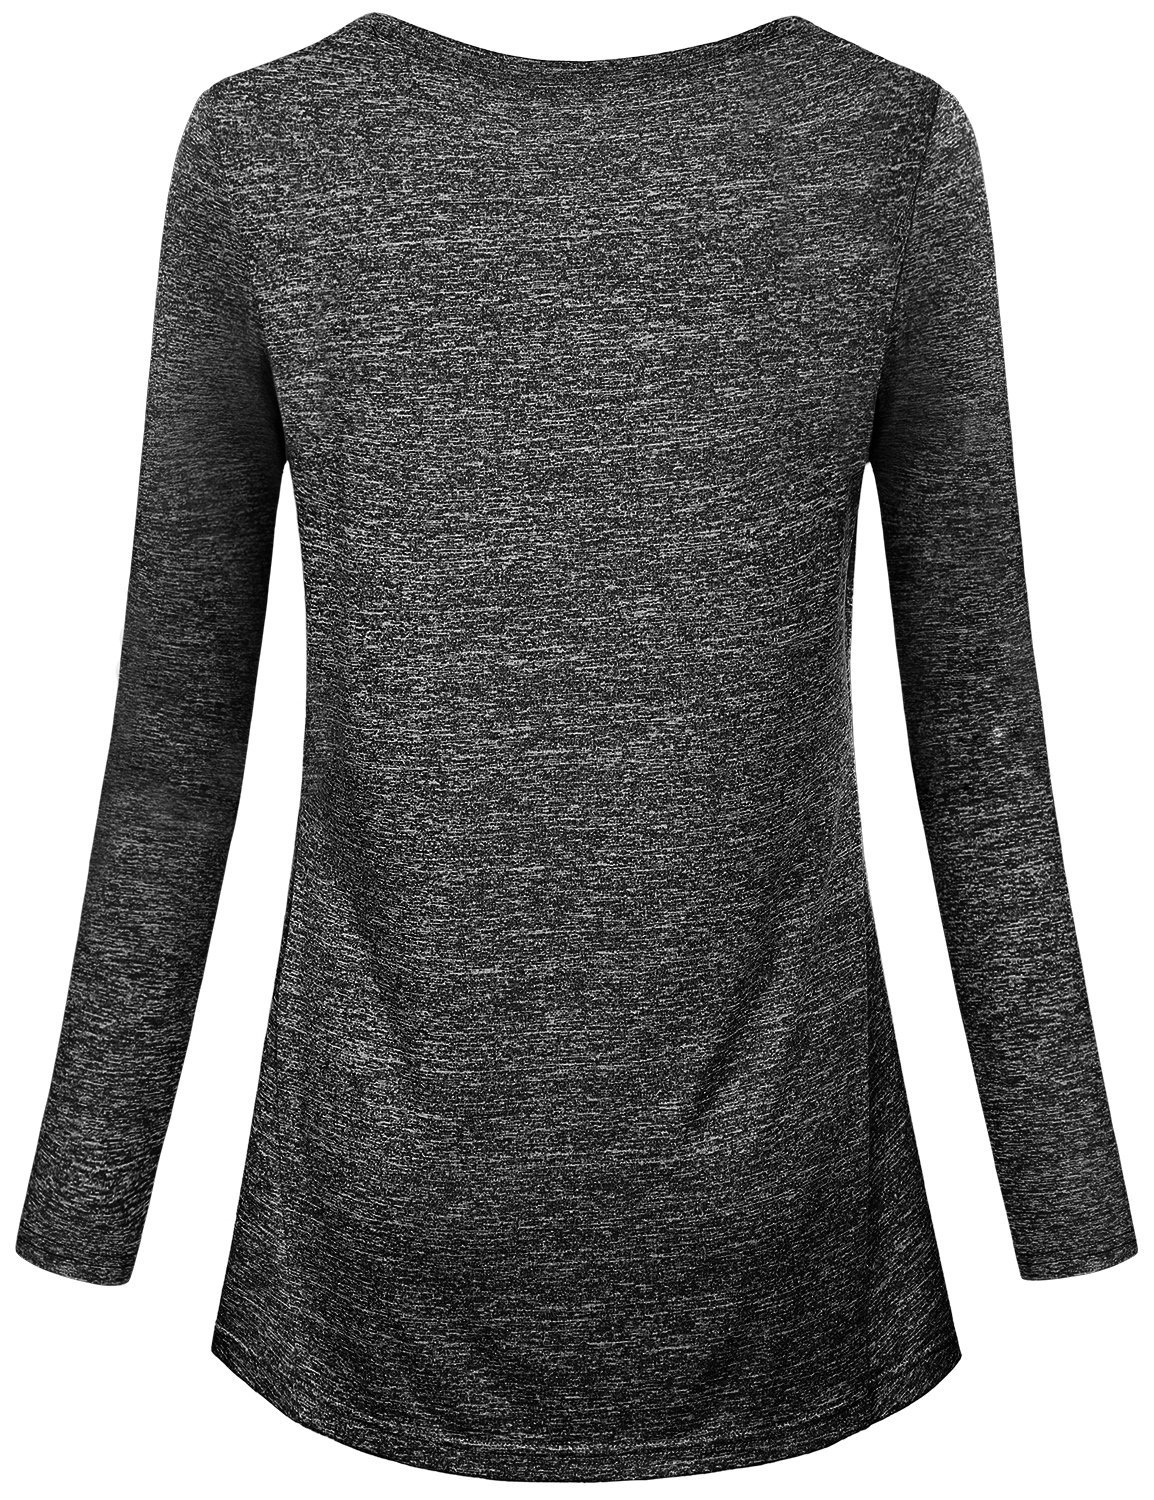 Kimmery Workout Shirts for Women, Ladies Top Round Neck Long Sleeve Heathered Yoga Blouse Moisture Wicking Sun Protection Lightweight Dri Fit Tee Performance Black Medium by Kimmery (Image #2)